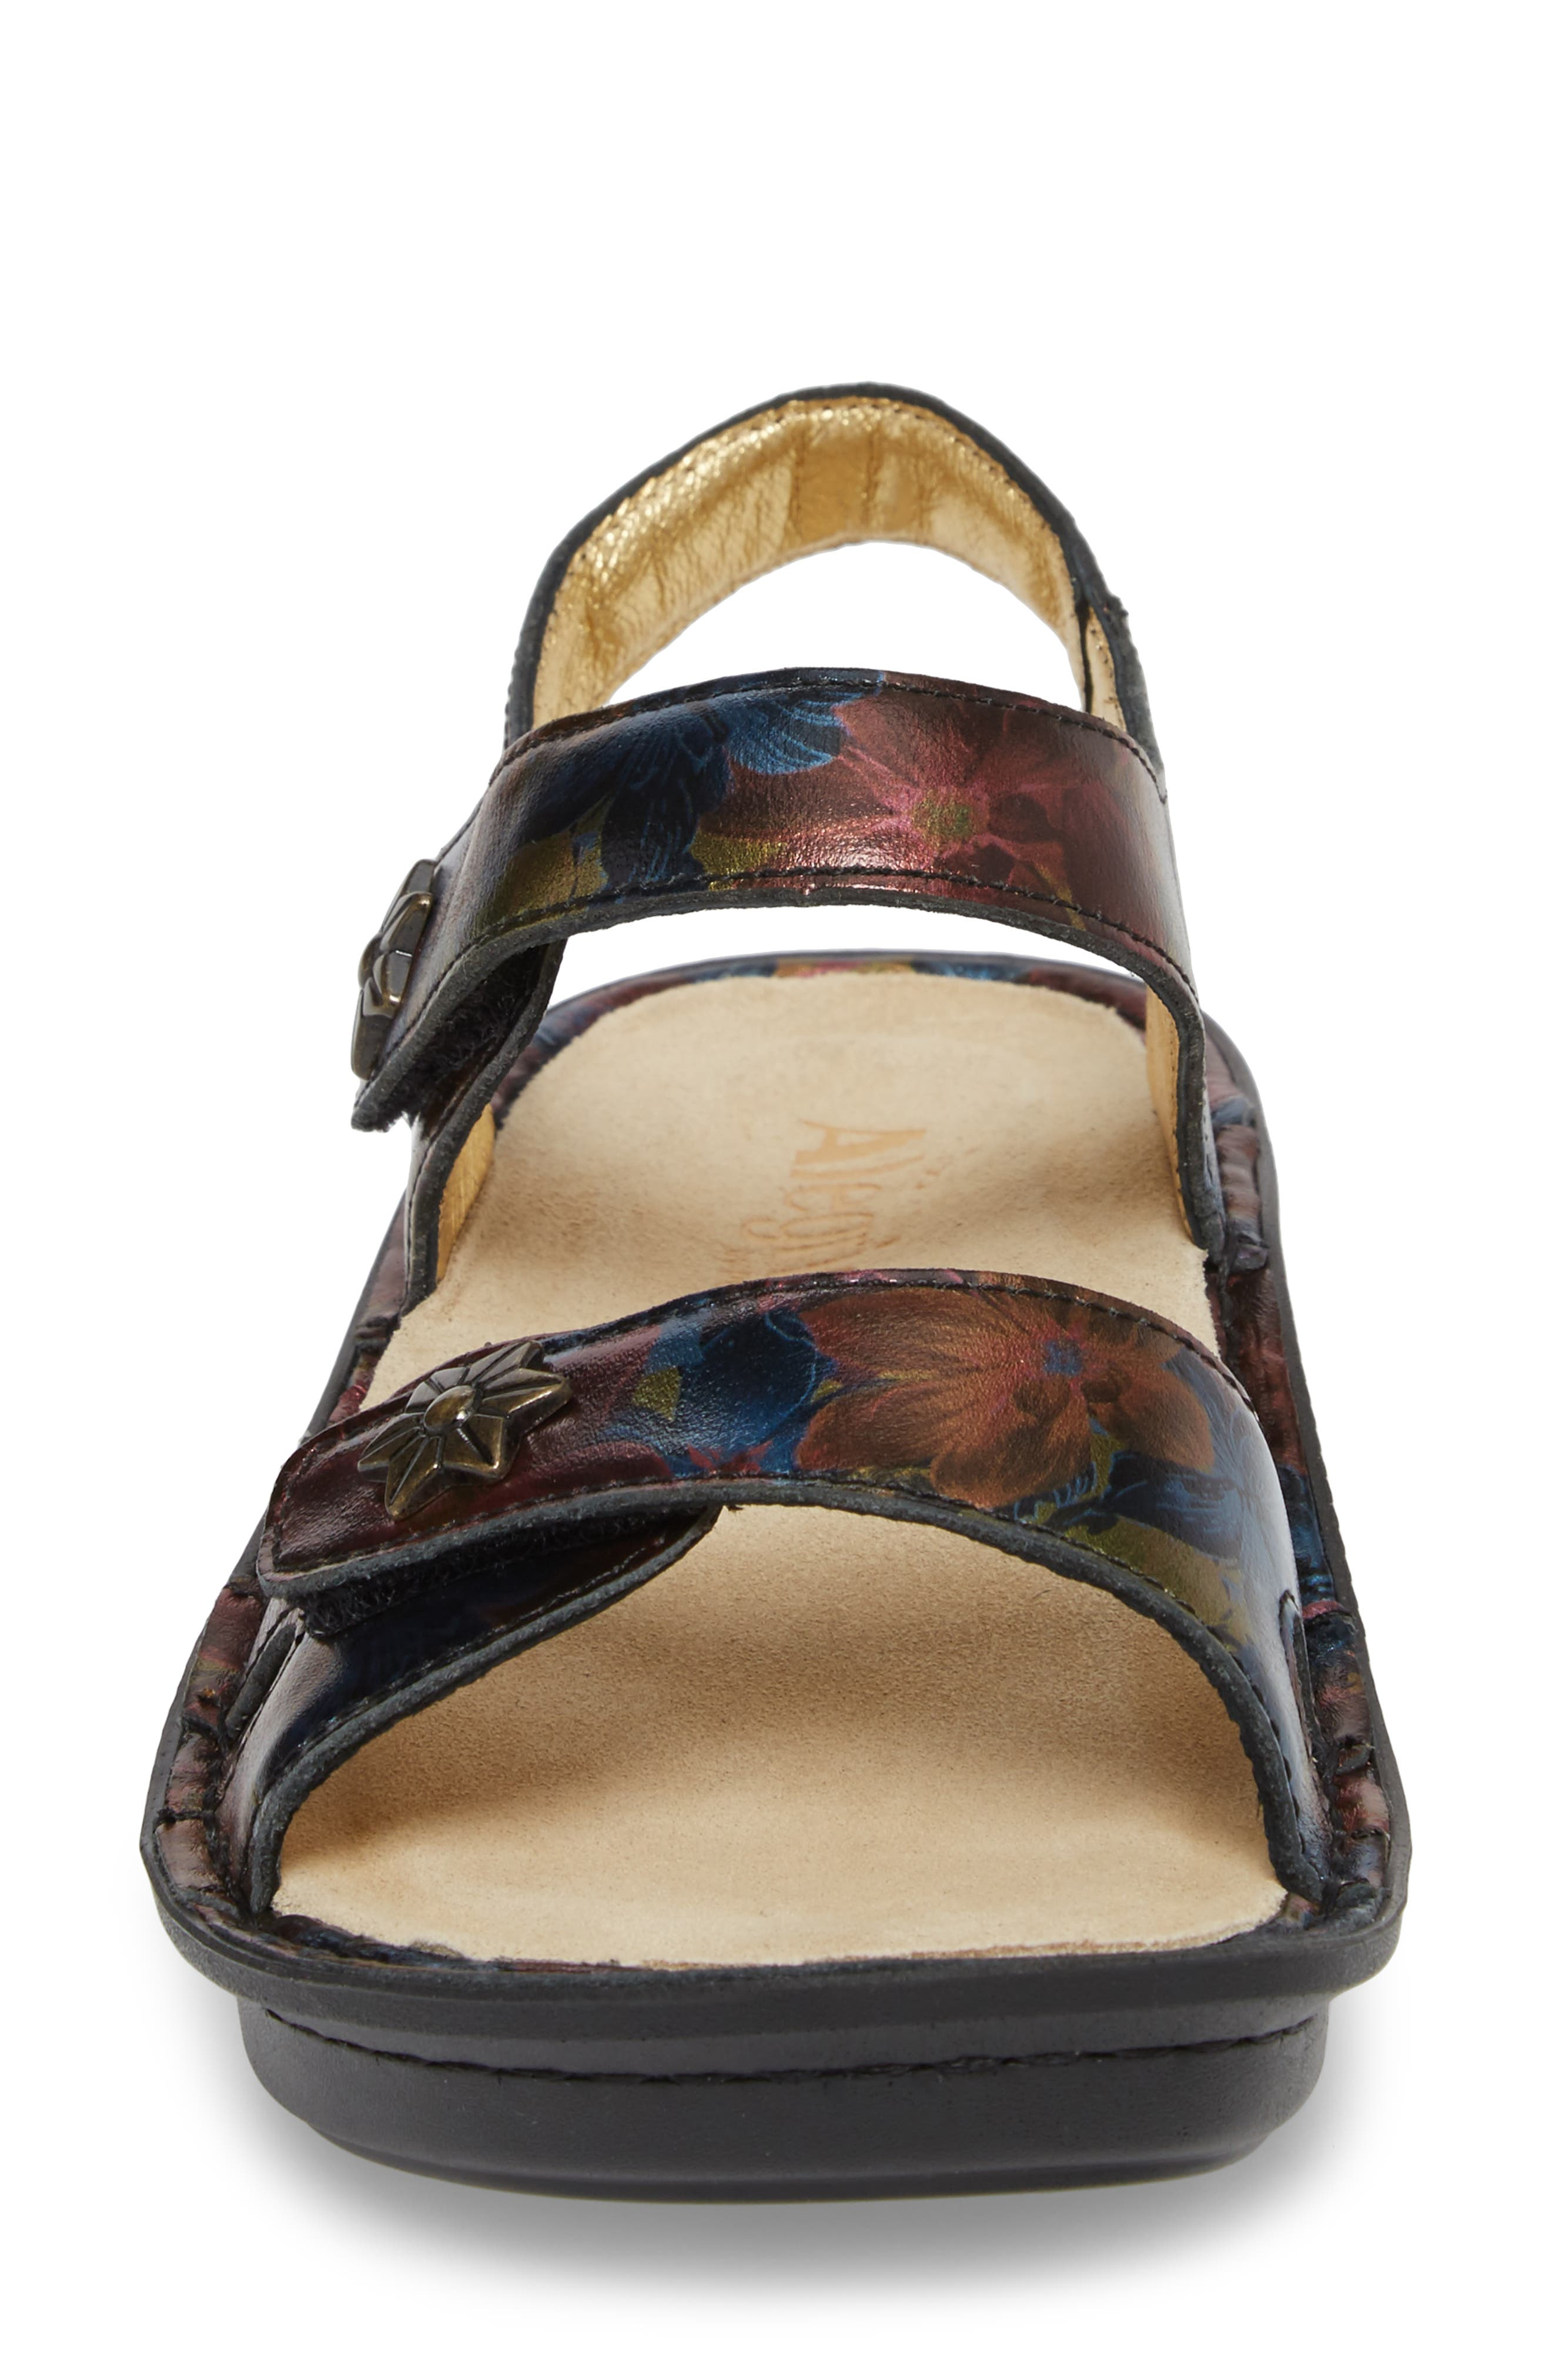 Vienna Sandal,                             Alternate thumbnail 4, color,                             Special Lady Leather